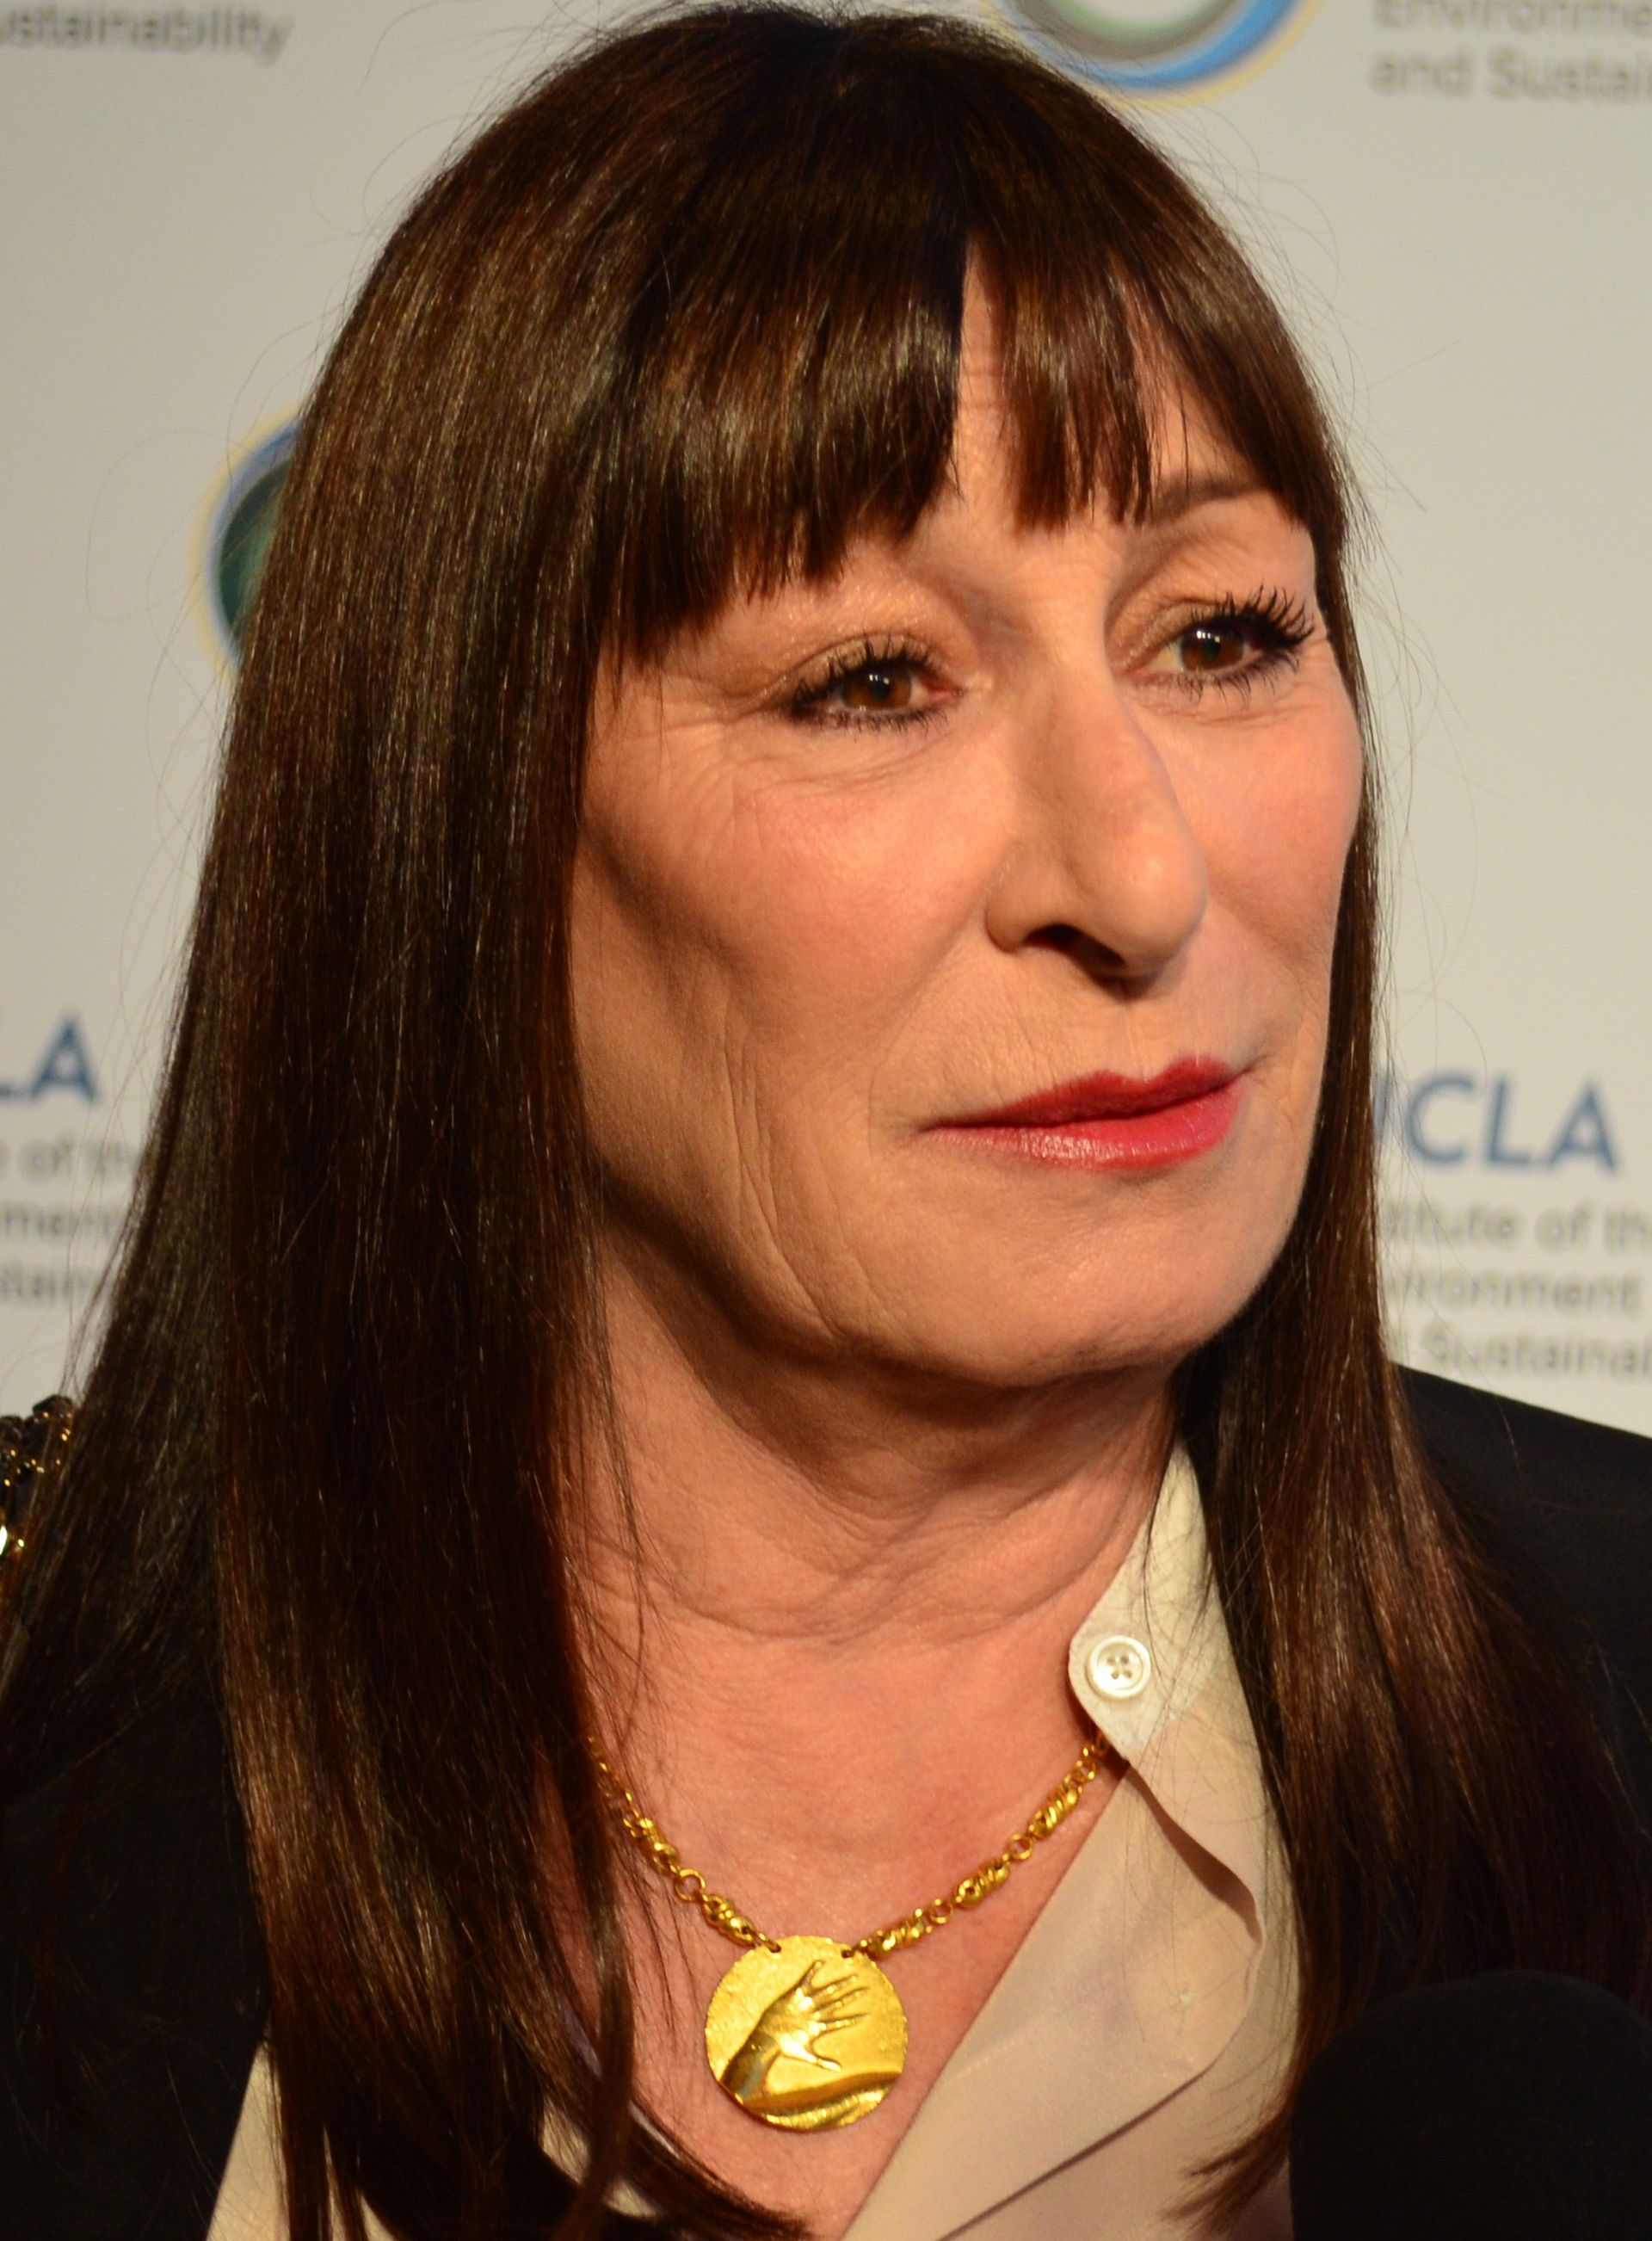 Anjelica Huston – Wikipedia